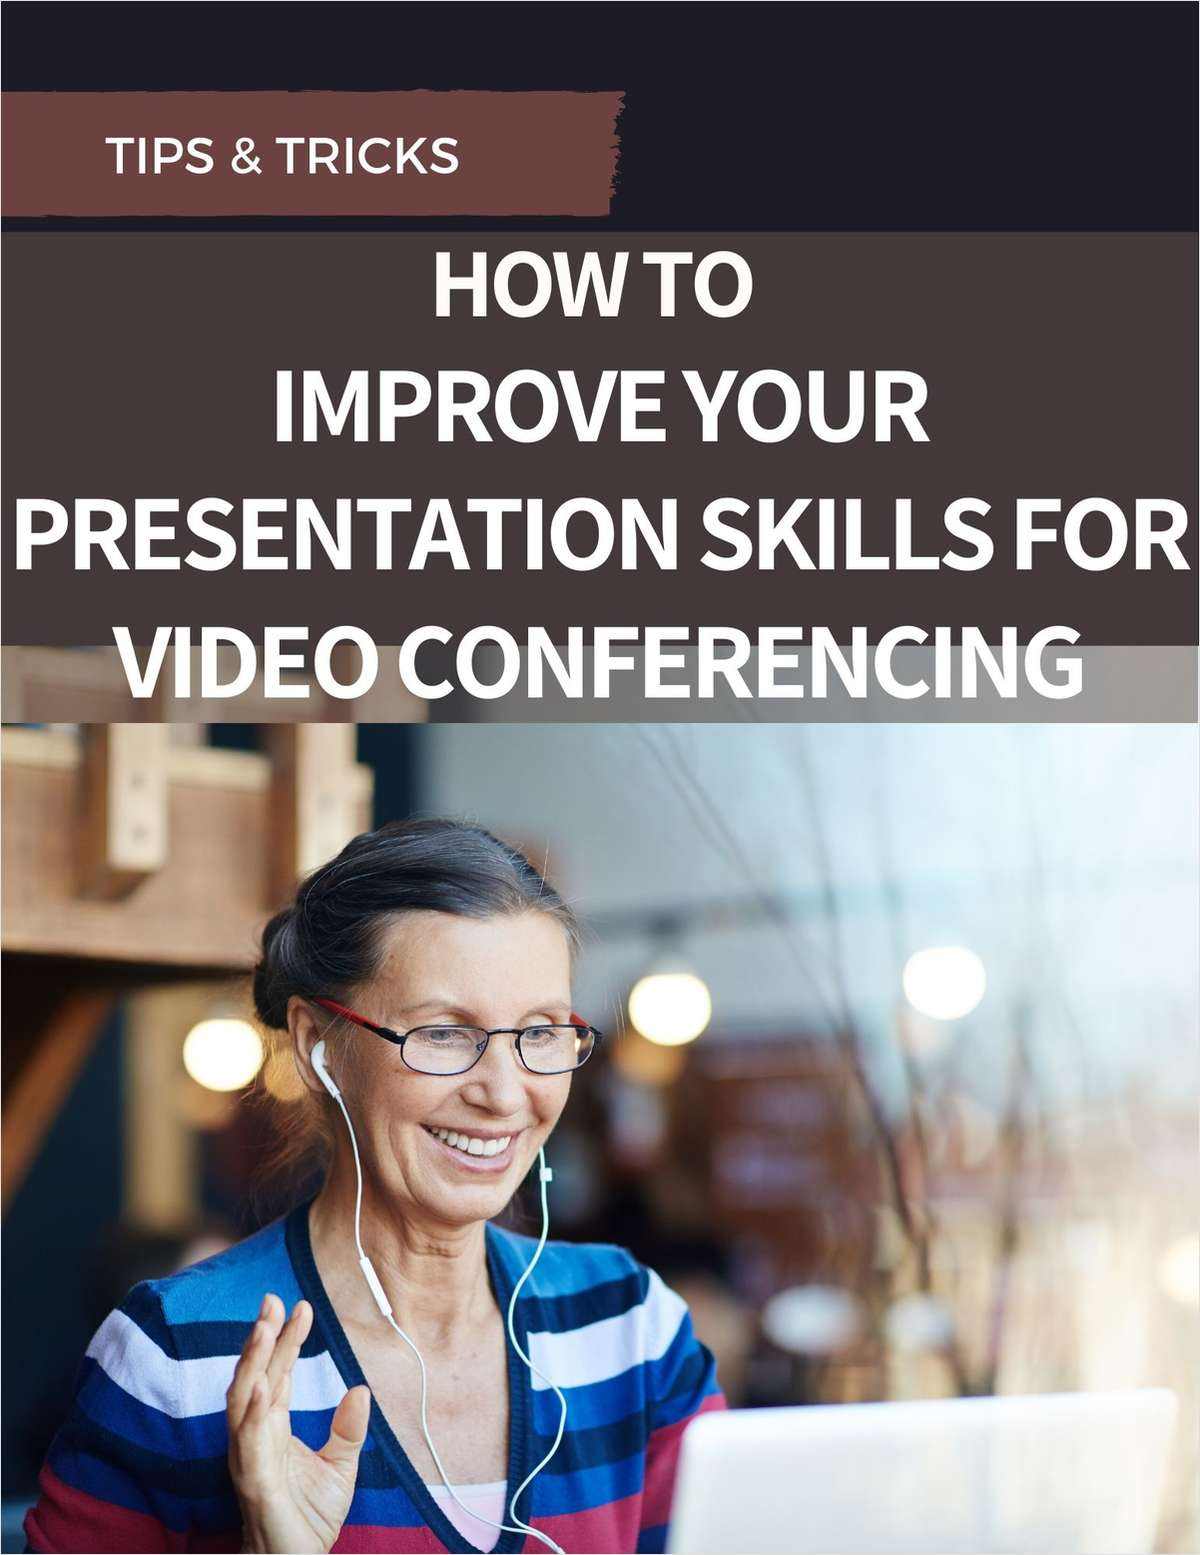 How to Improve Your Presentation Skills for Video Conferencing